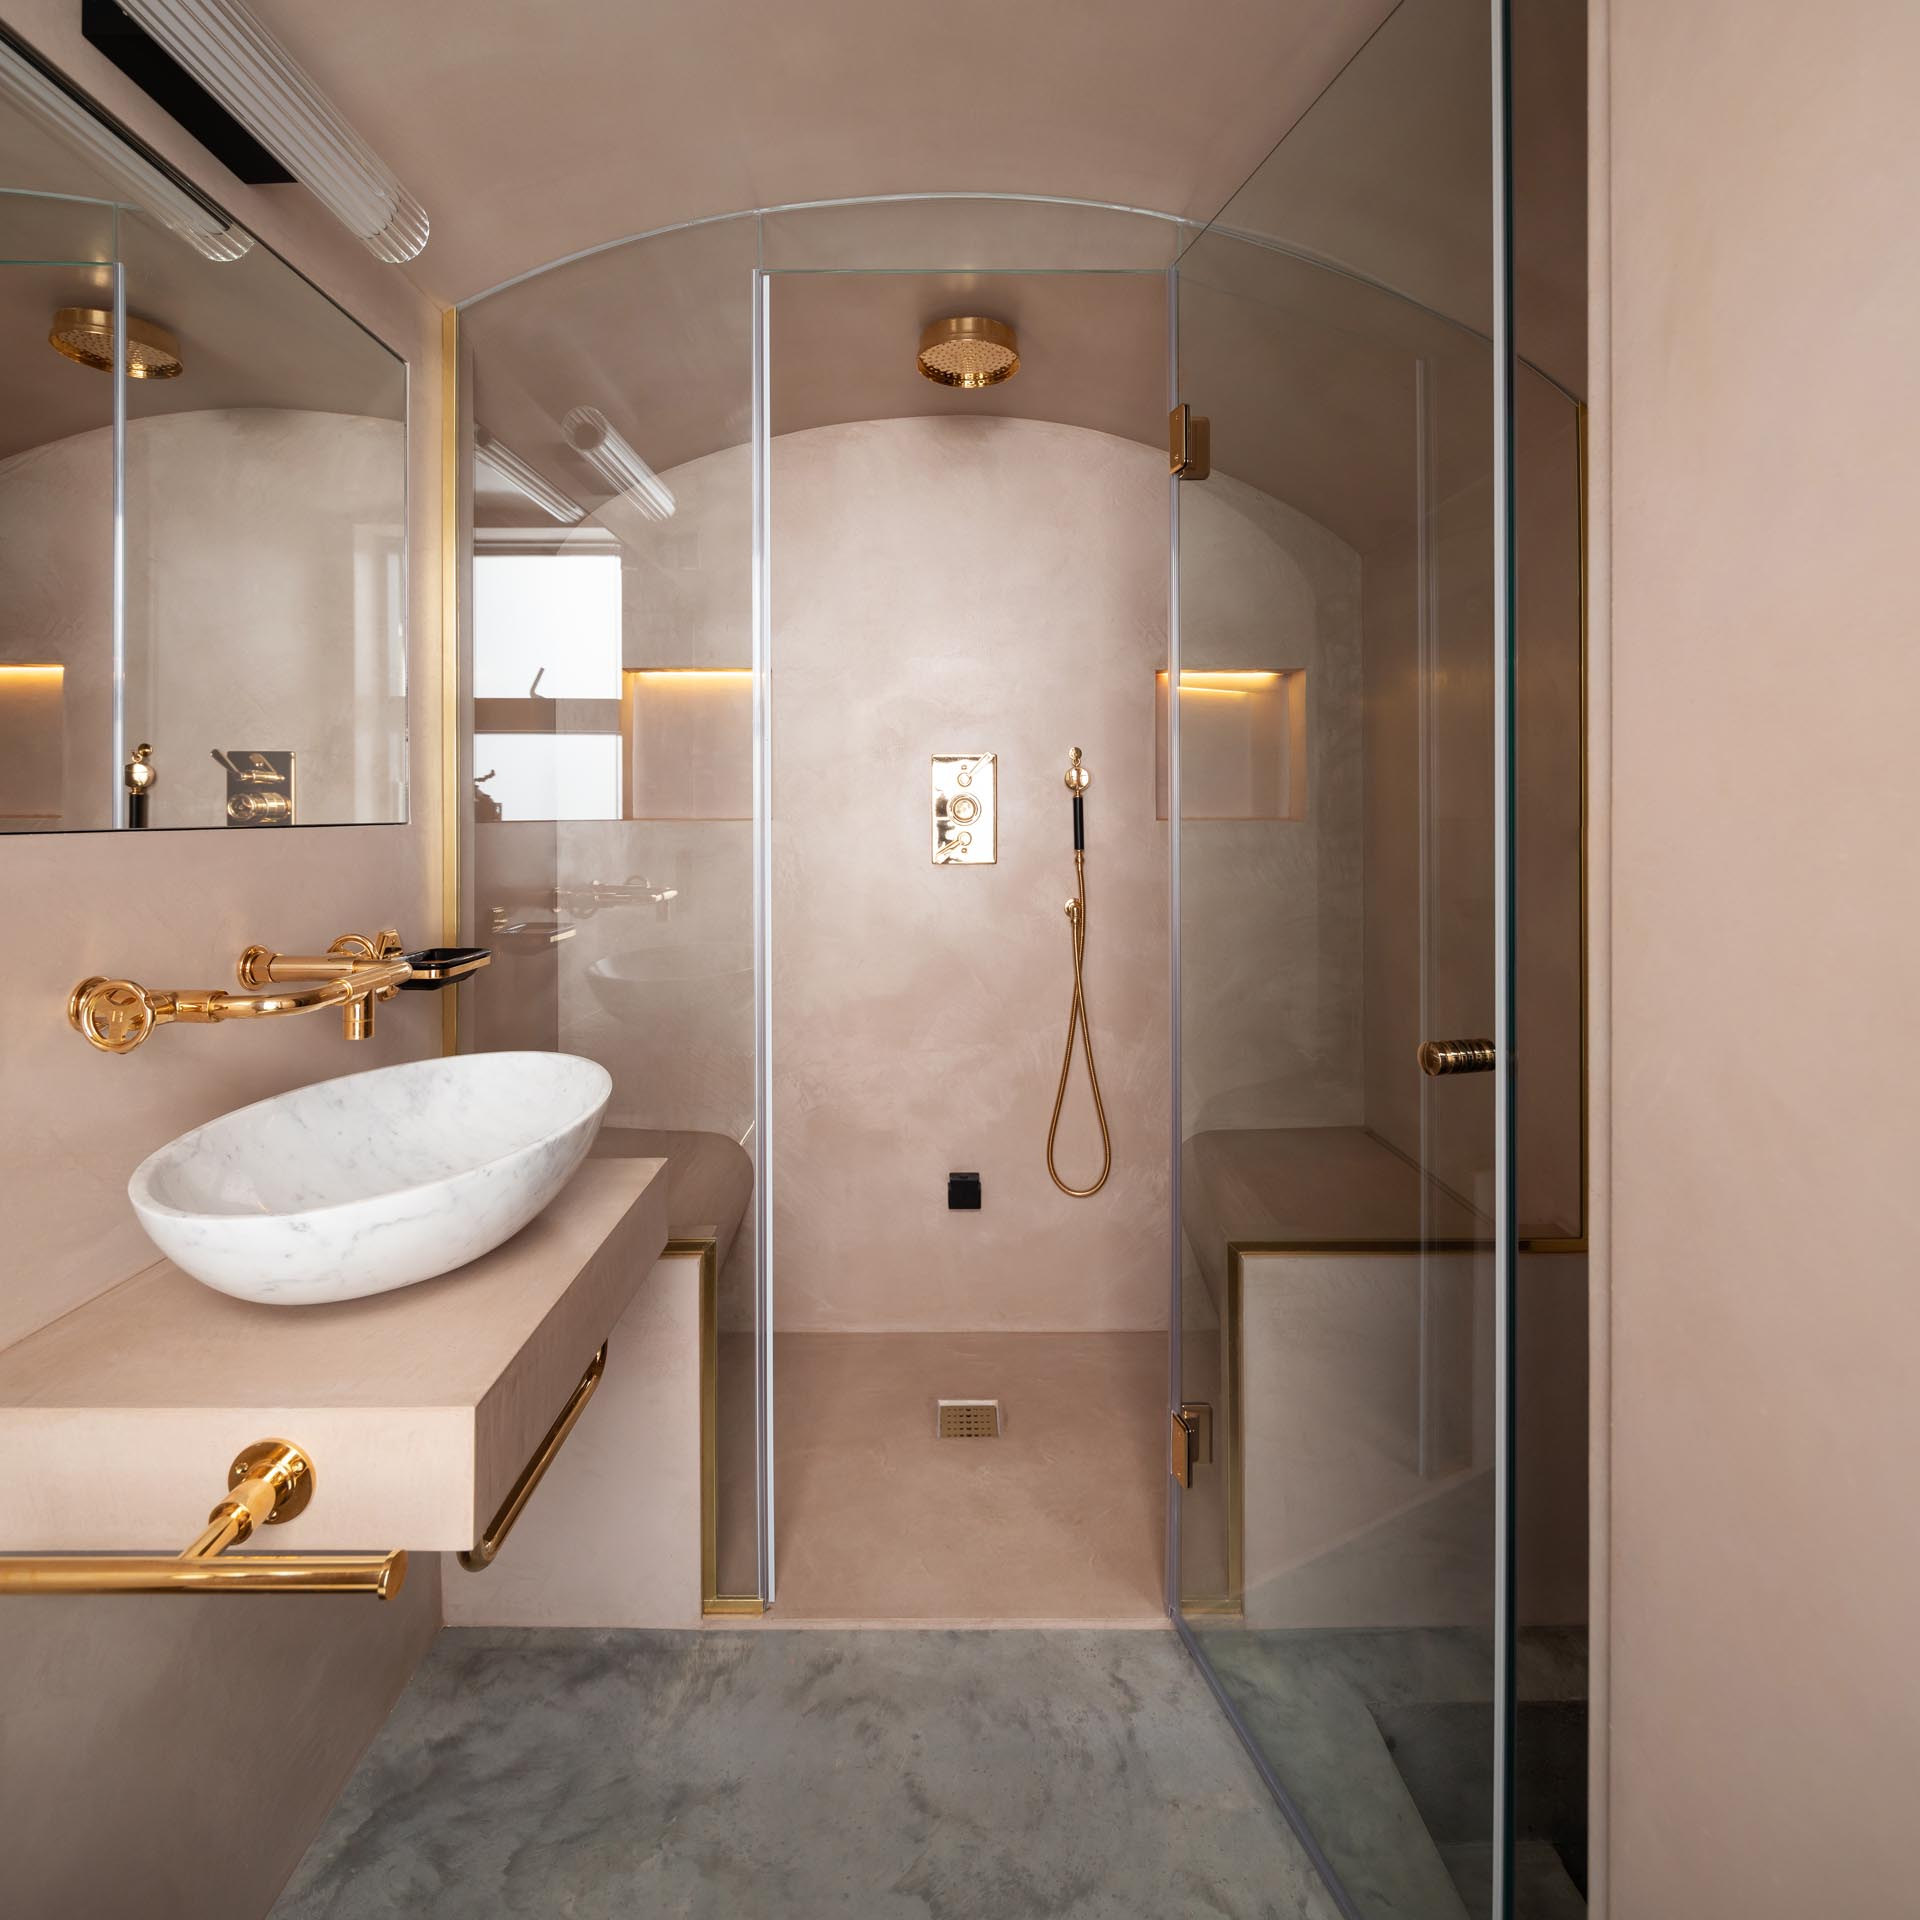 A modern steam room with a curved glass screen, blush pink walls, and rose gold hardware.